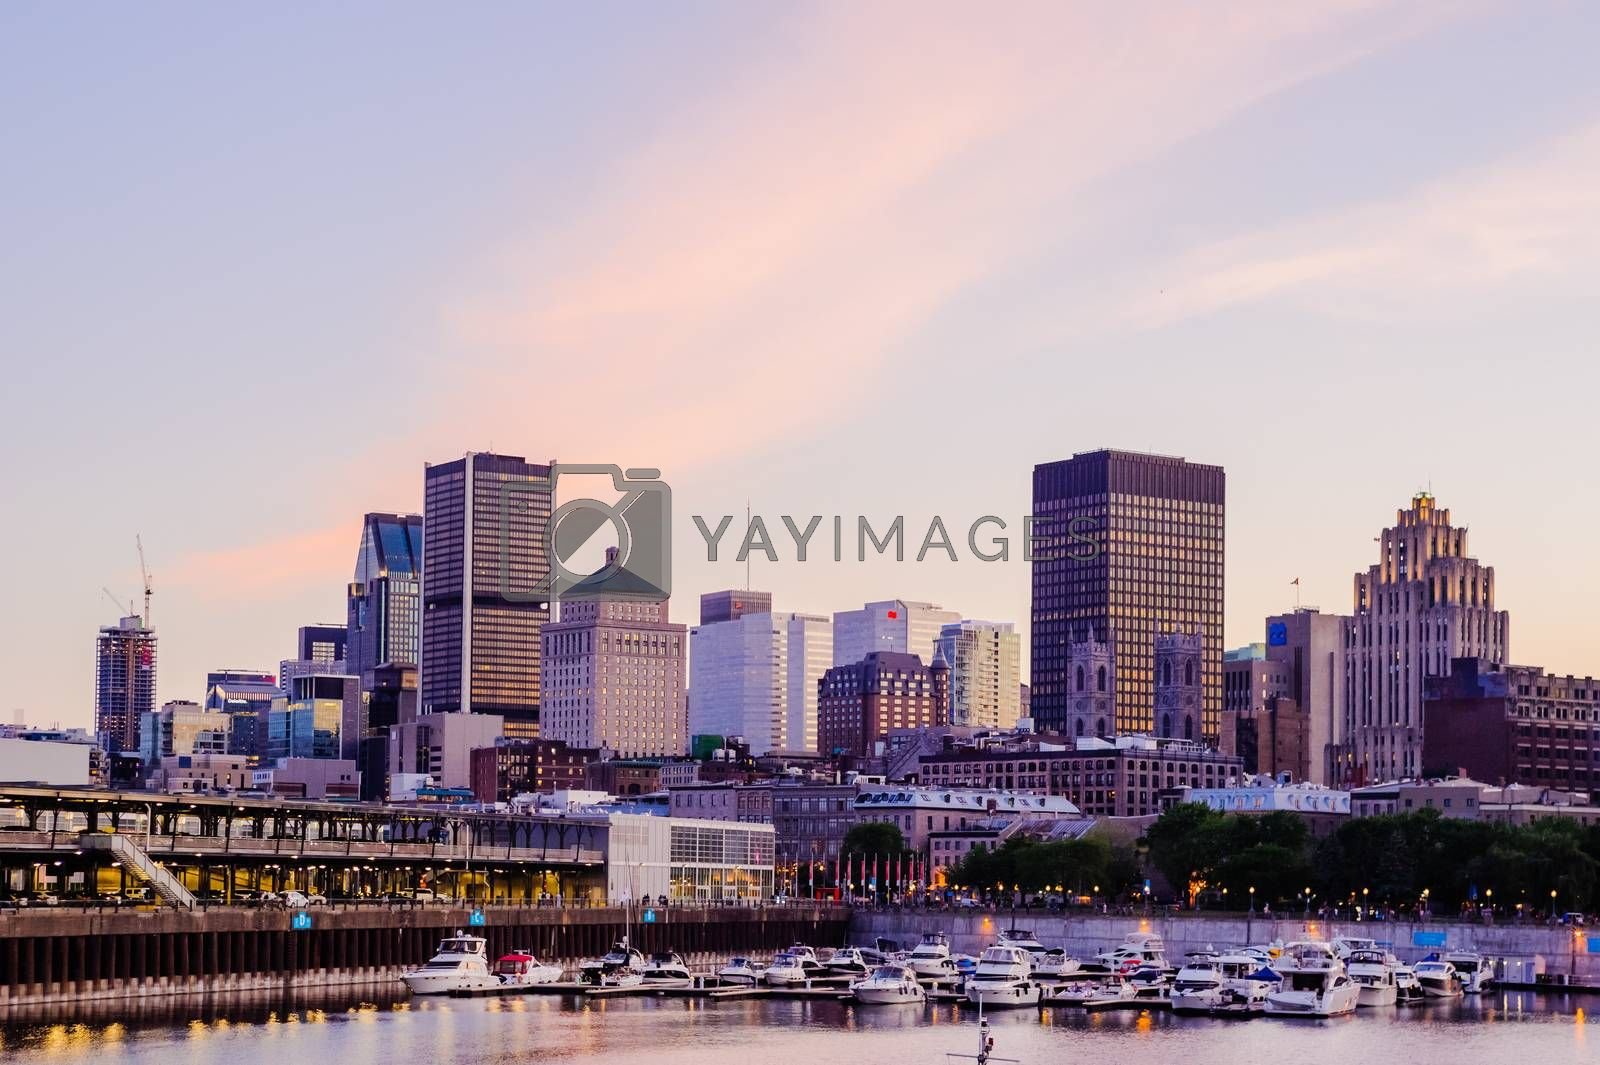 MONTREAL, CANADA - JUNE 15, 2018: The quays and historical old city near the waterfront are a popular tourist area on a summer evening.